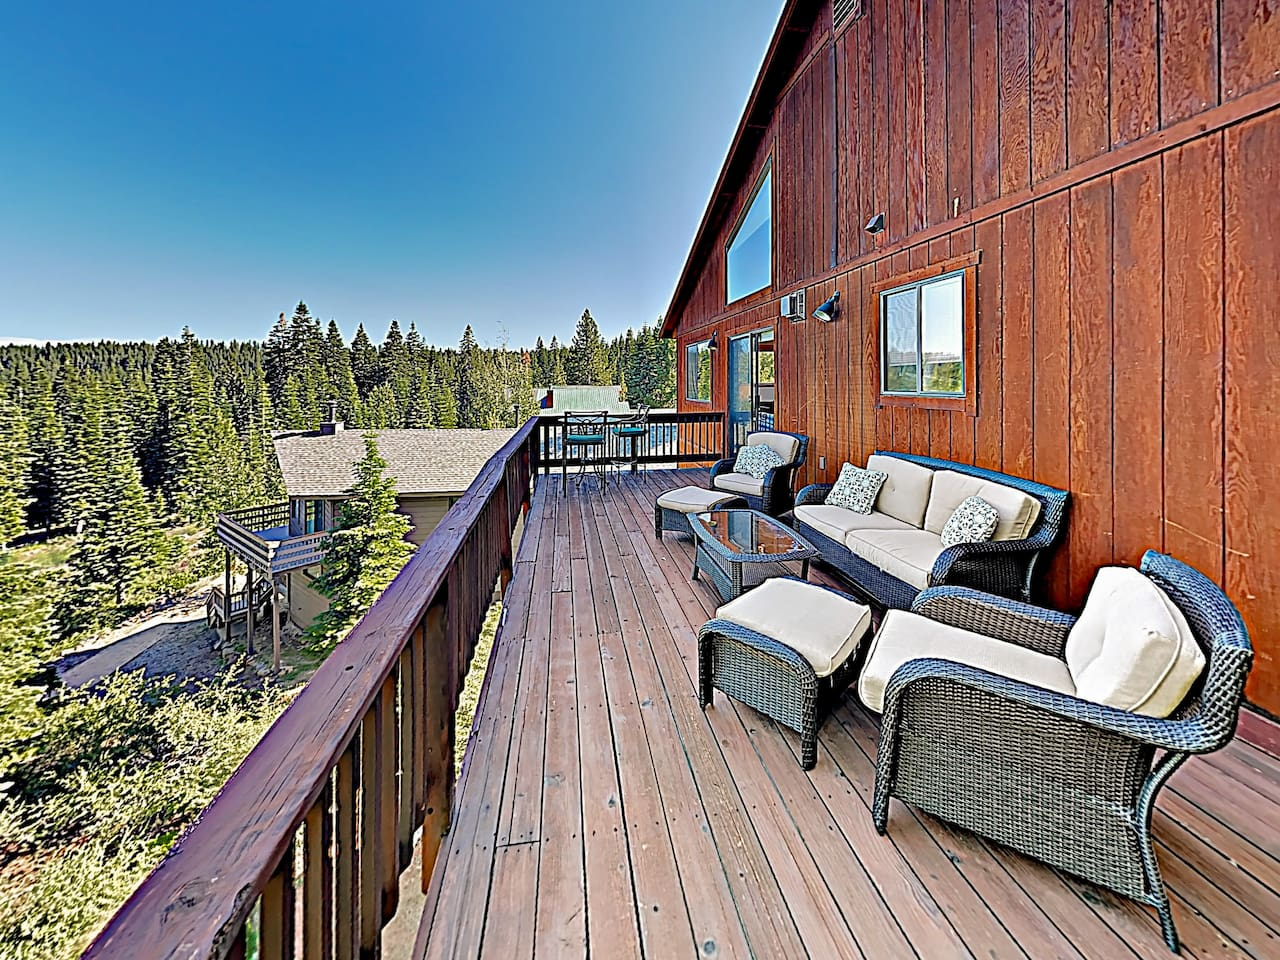 Welcome to Truckee! This Tahoe Donner paradise is professionally managed by TurnKey Vacation Rentals.